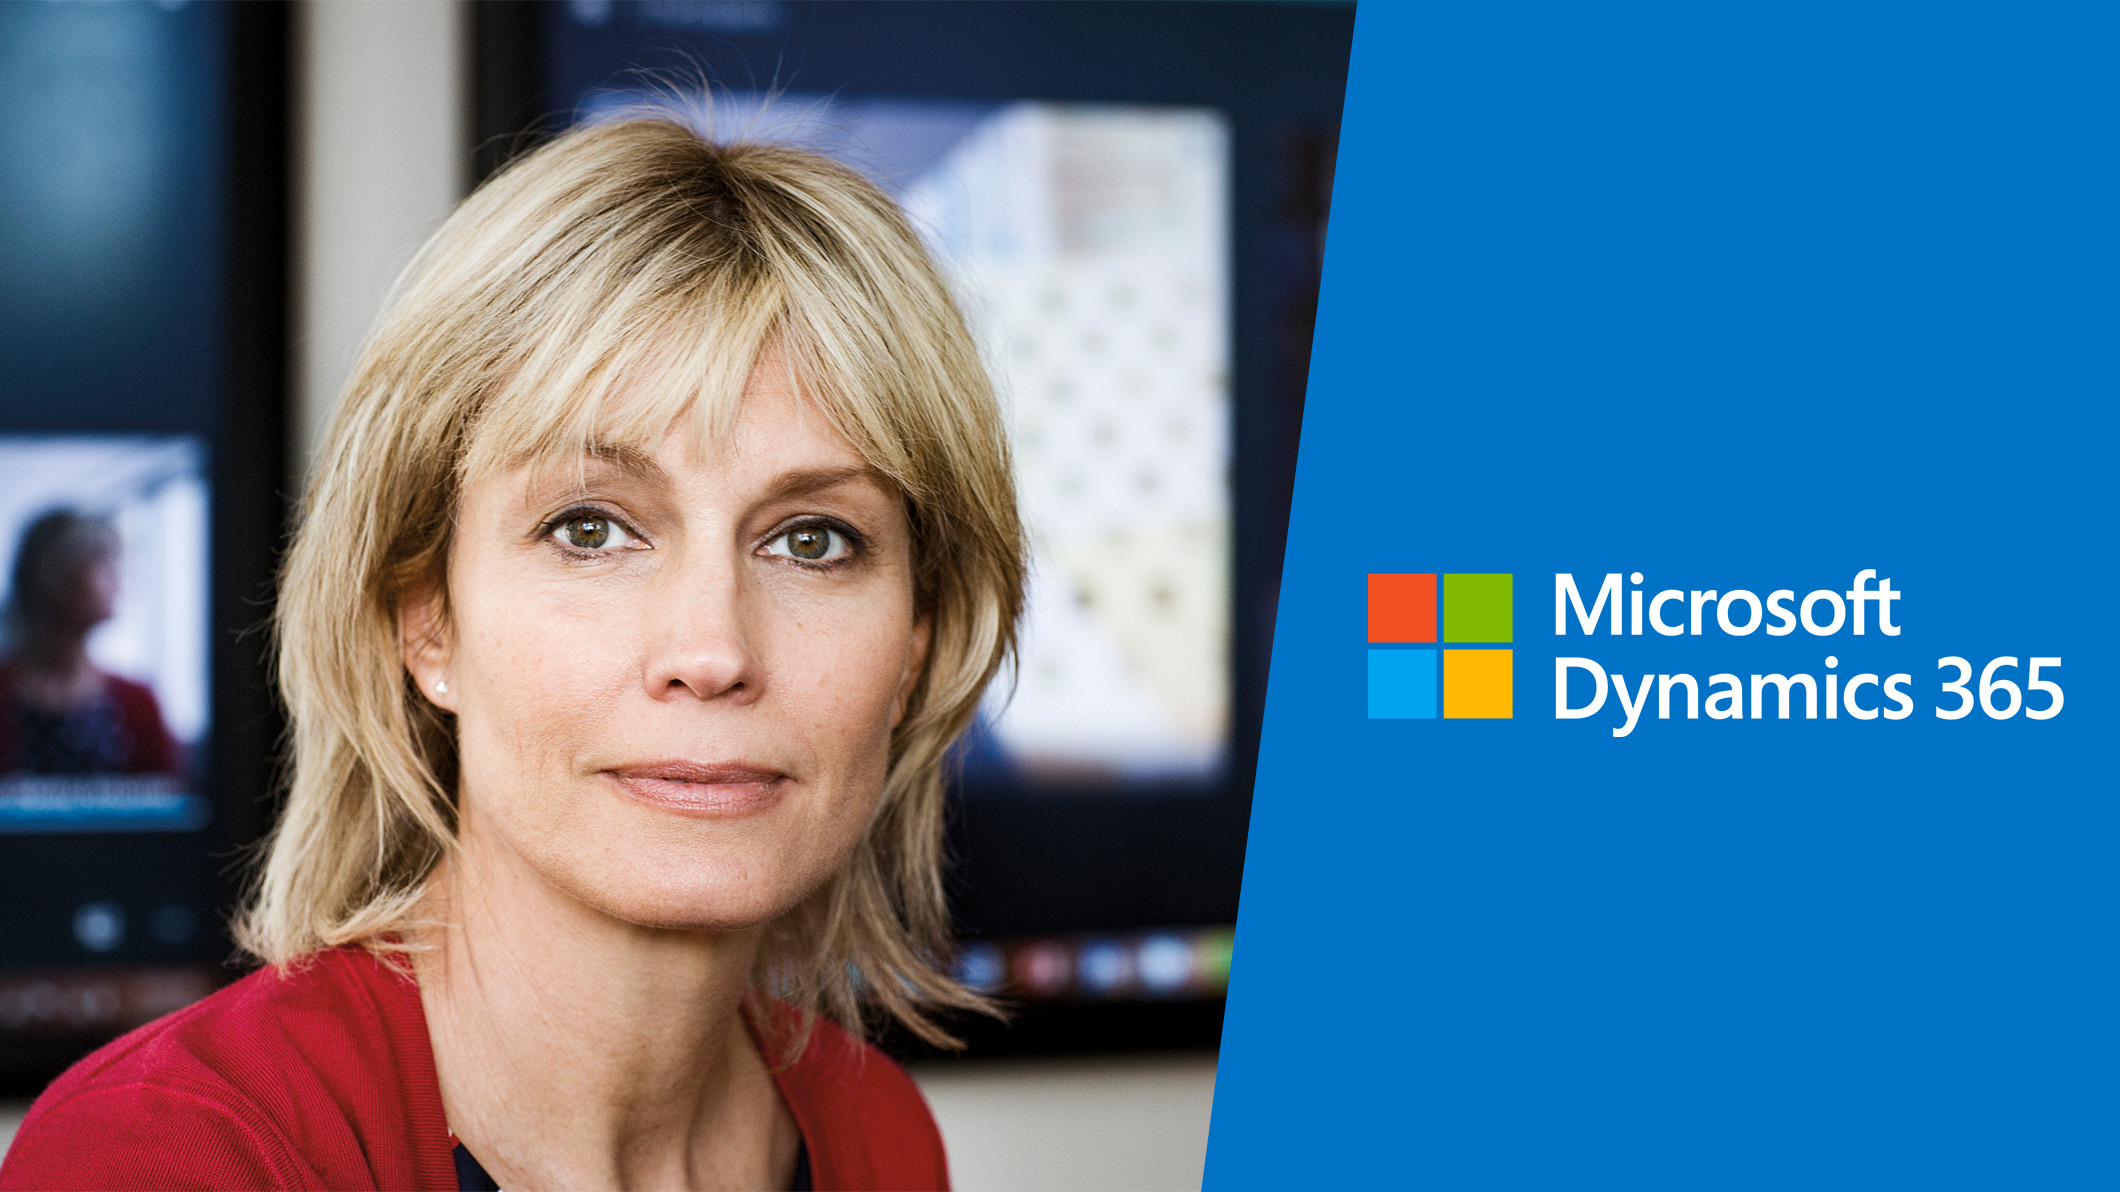 Dynamics 365 for customer engagement for Customer Service MB-230.1